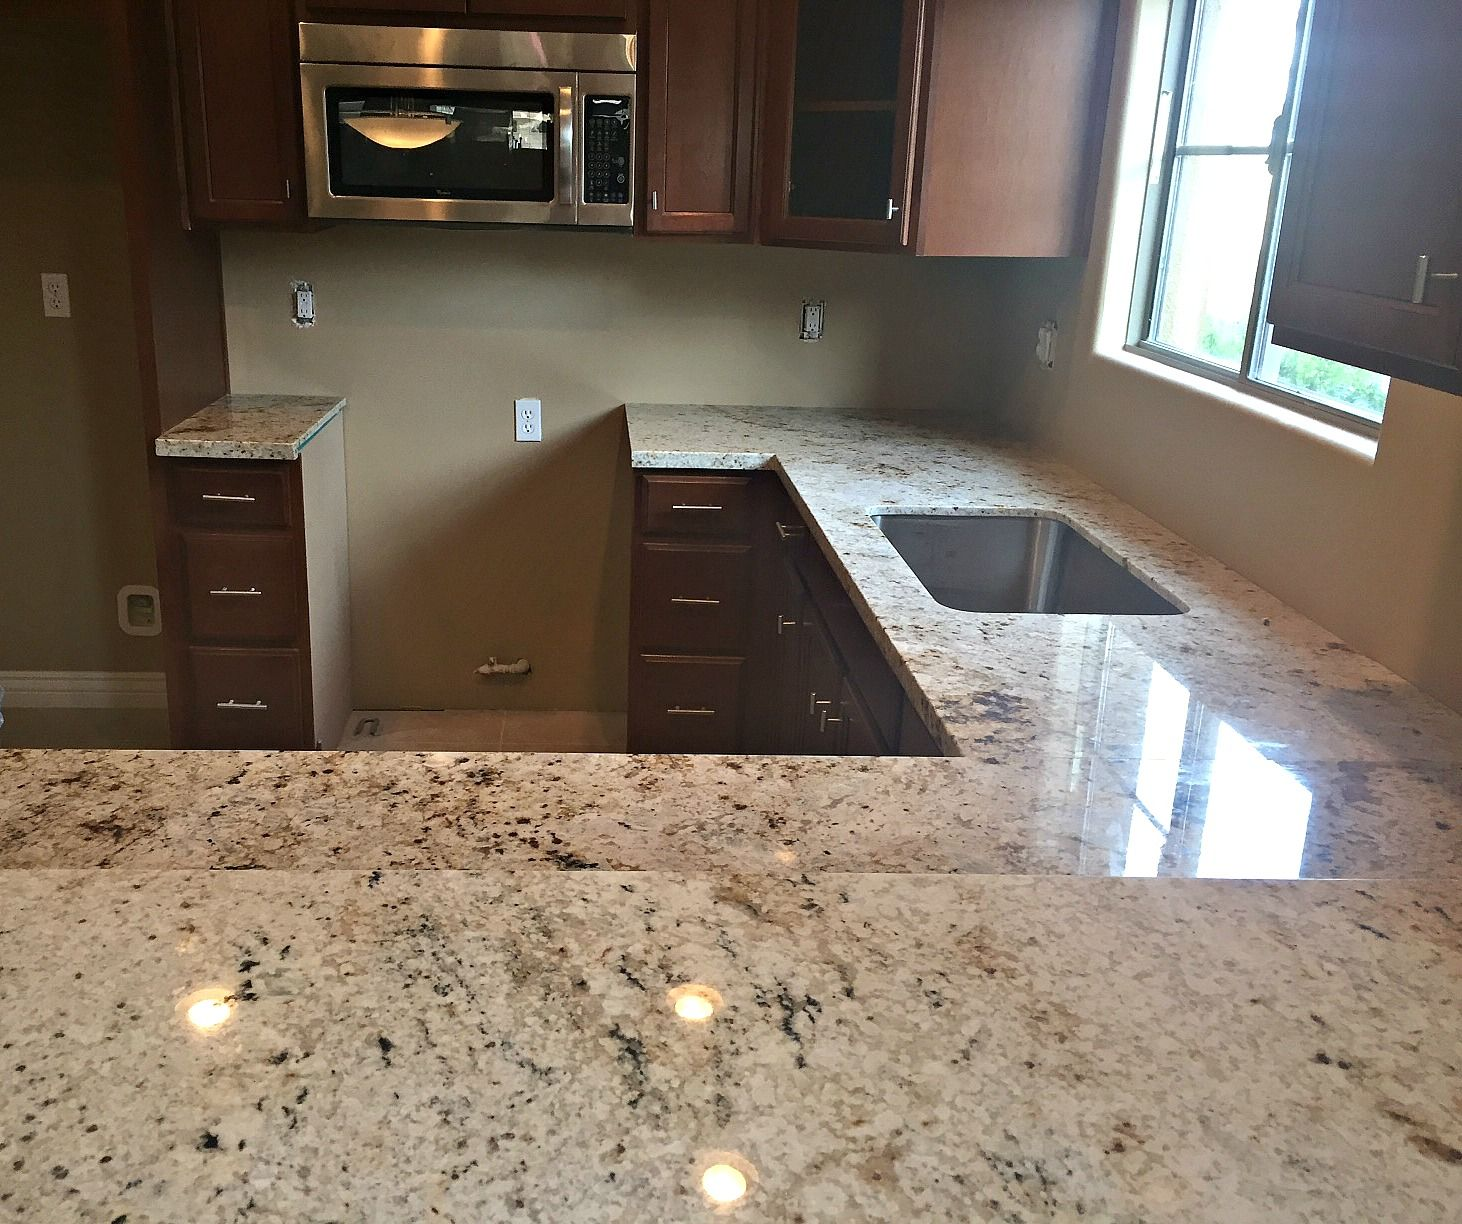 Elegant Cafe Creme Granite Countertop Renovation In Phoenix, AZ With Flat Polish  Edge And Single Bowl Stainless Steel Under Mount Sink. Call Now For A Free  Estimate ...